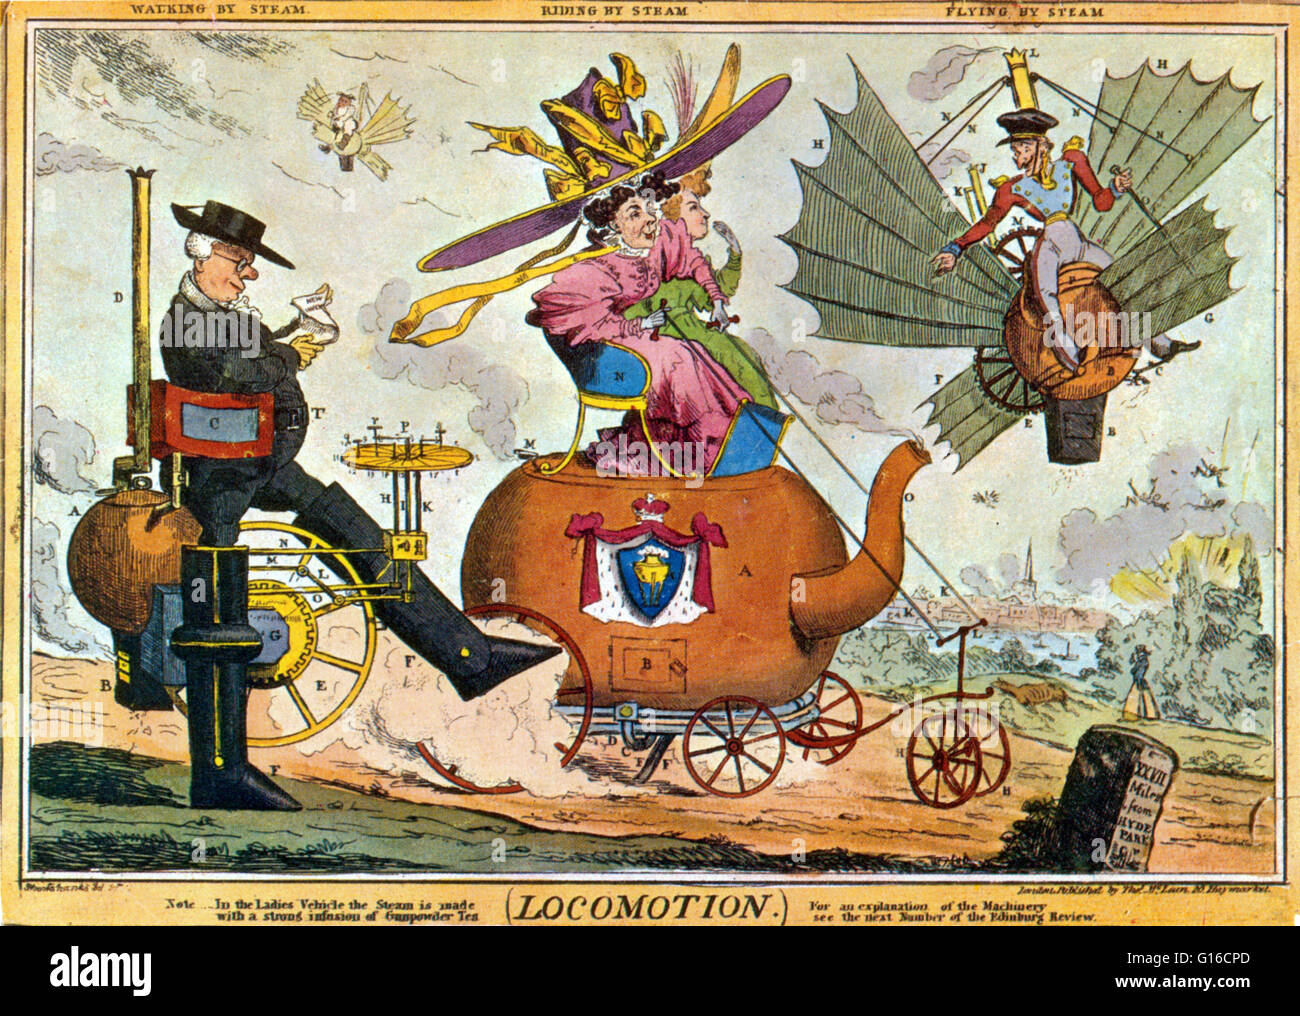 Locomotion - Walking by Steam, Riding by Steam, Flying by Steam, by Robert Seymour, 1830. Satire on the coming of - Stock Image